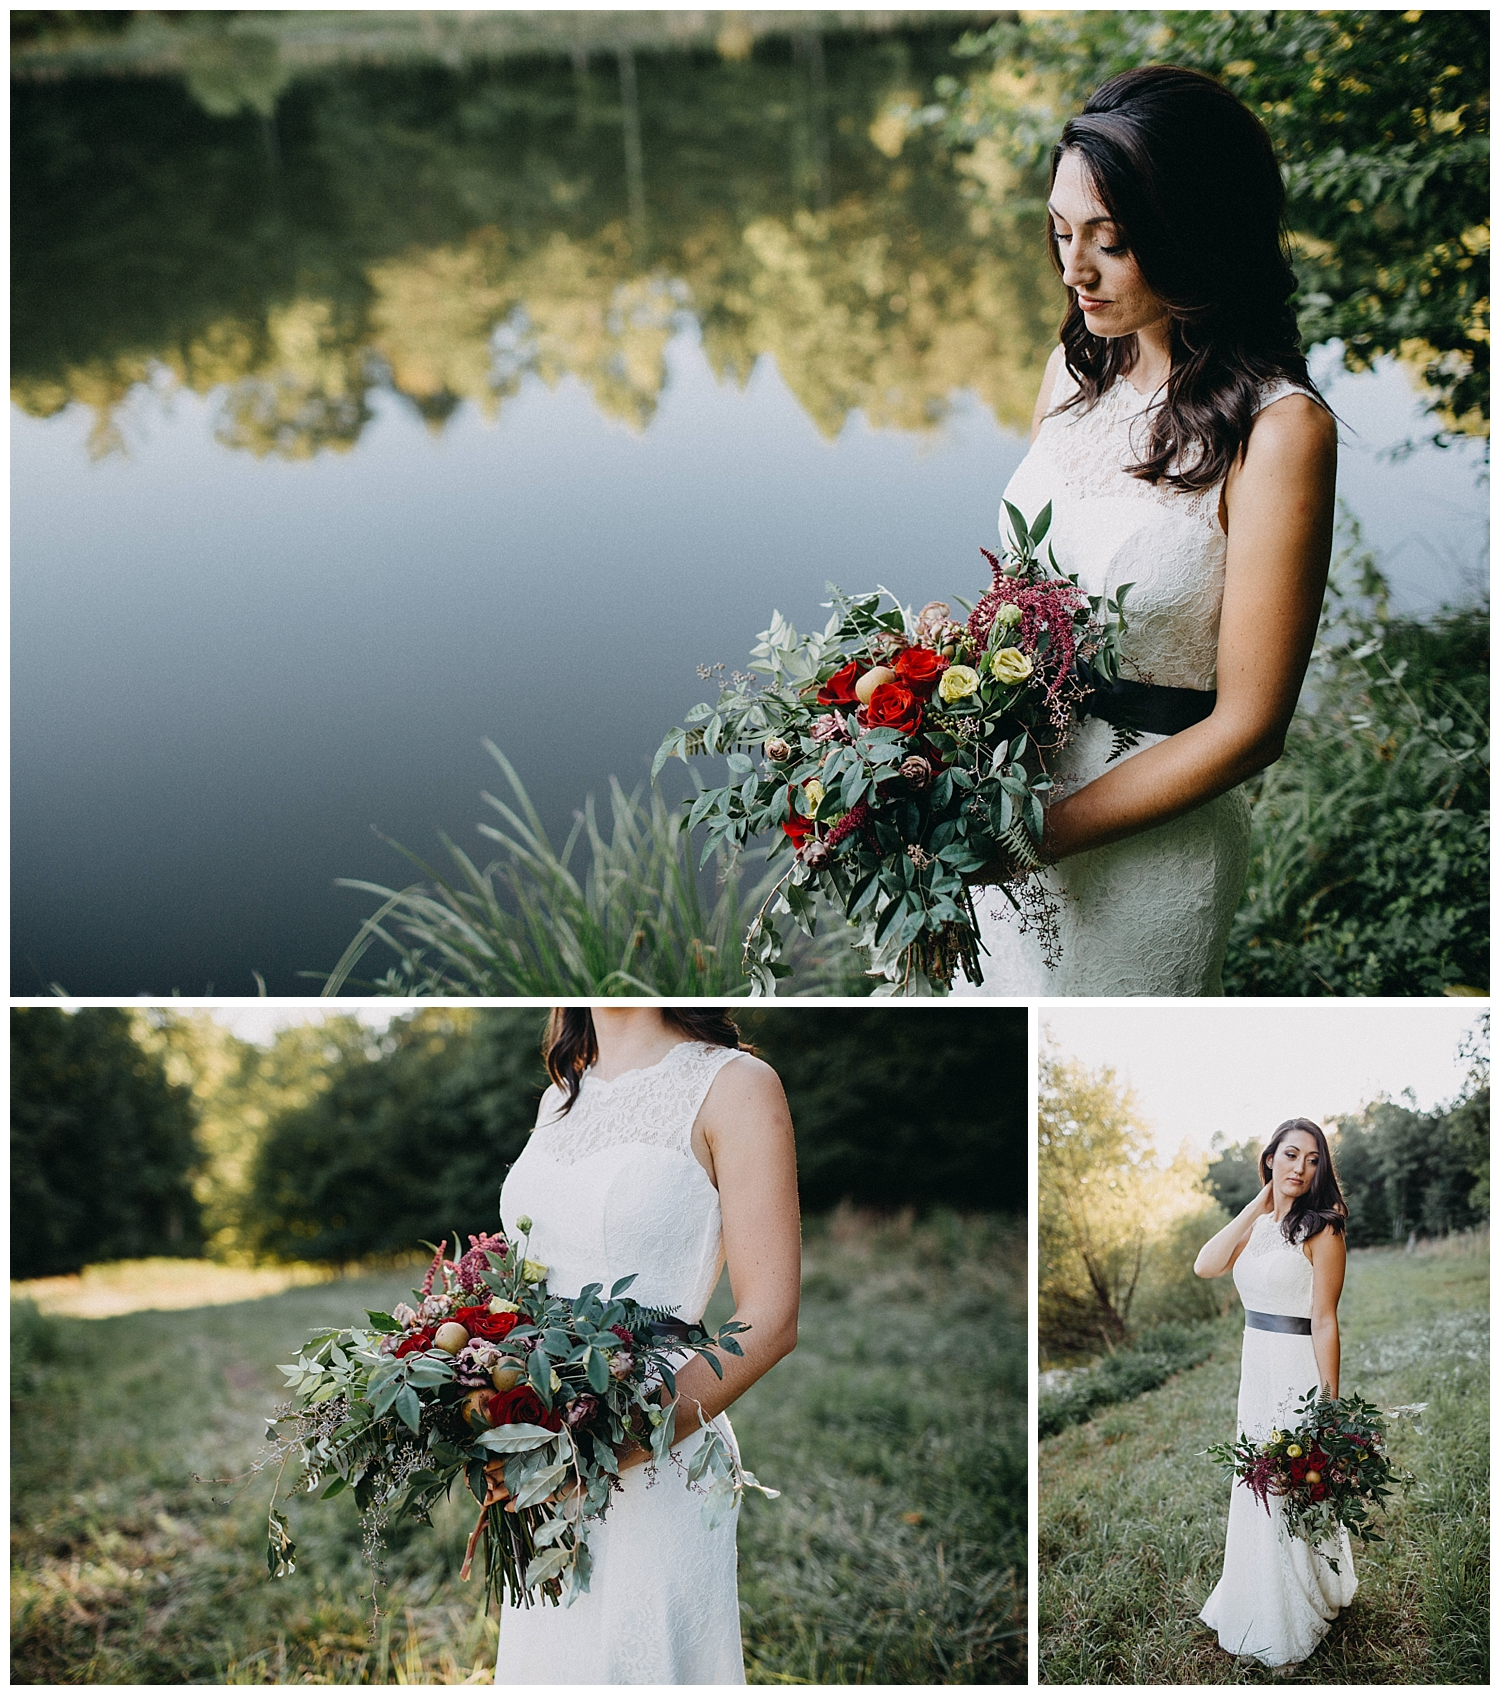 Bridal Session in Goode, Virginia